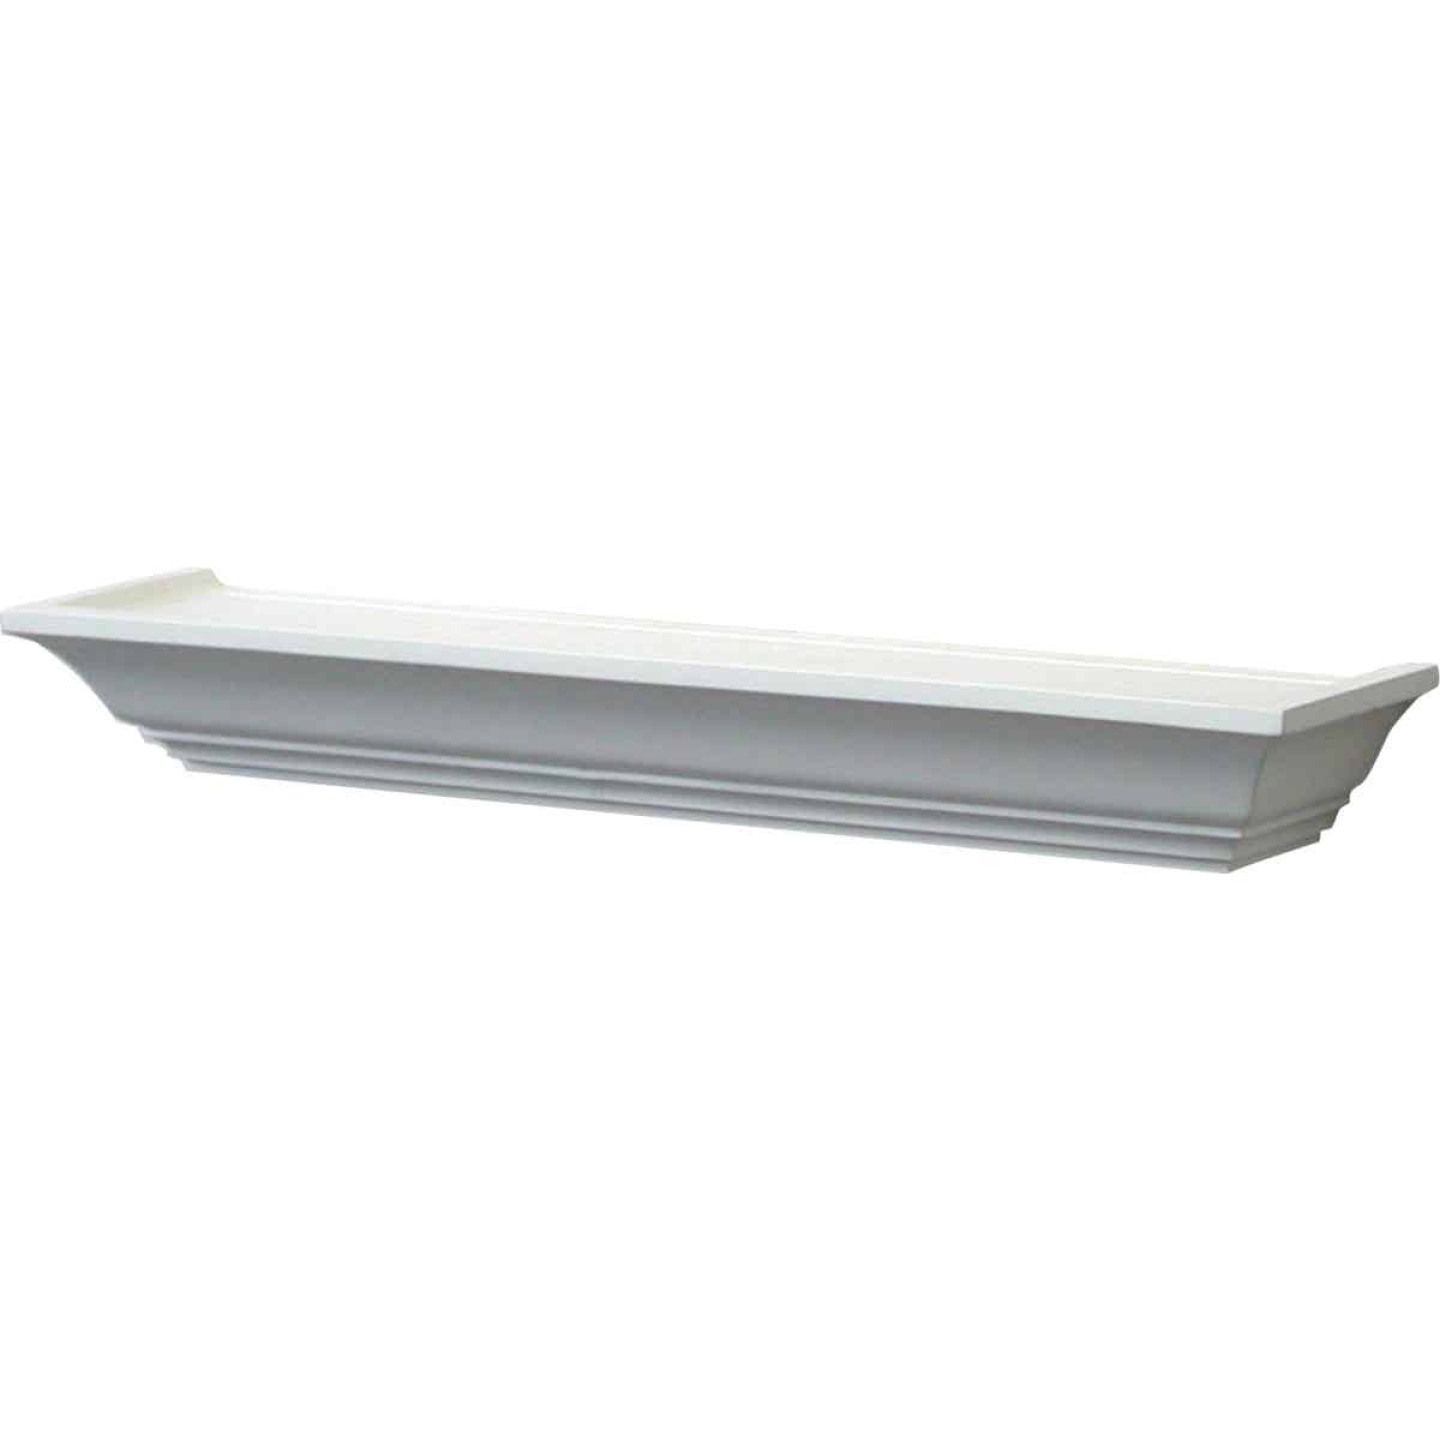 John Sterling Corp 24 In. White Mantel Decorative Shelf Image 1